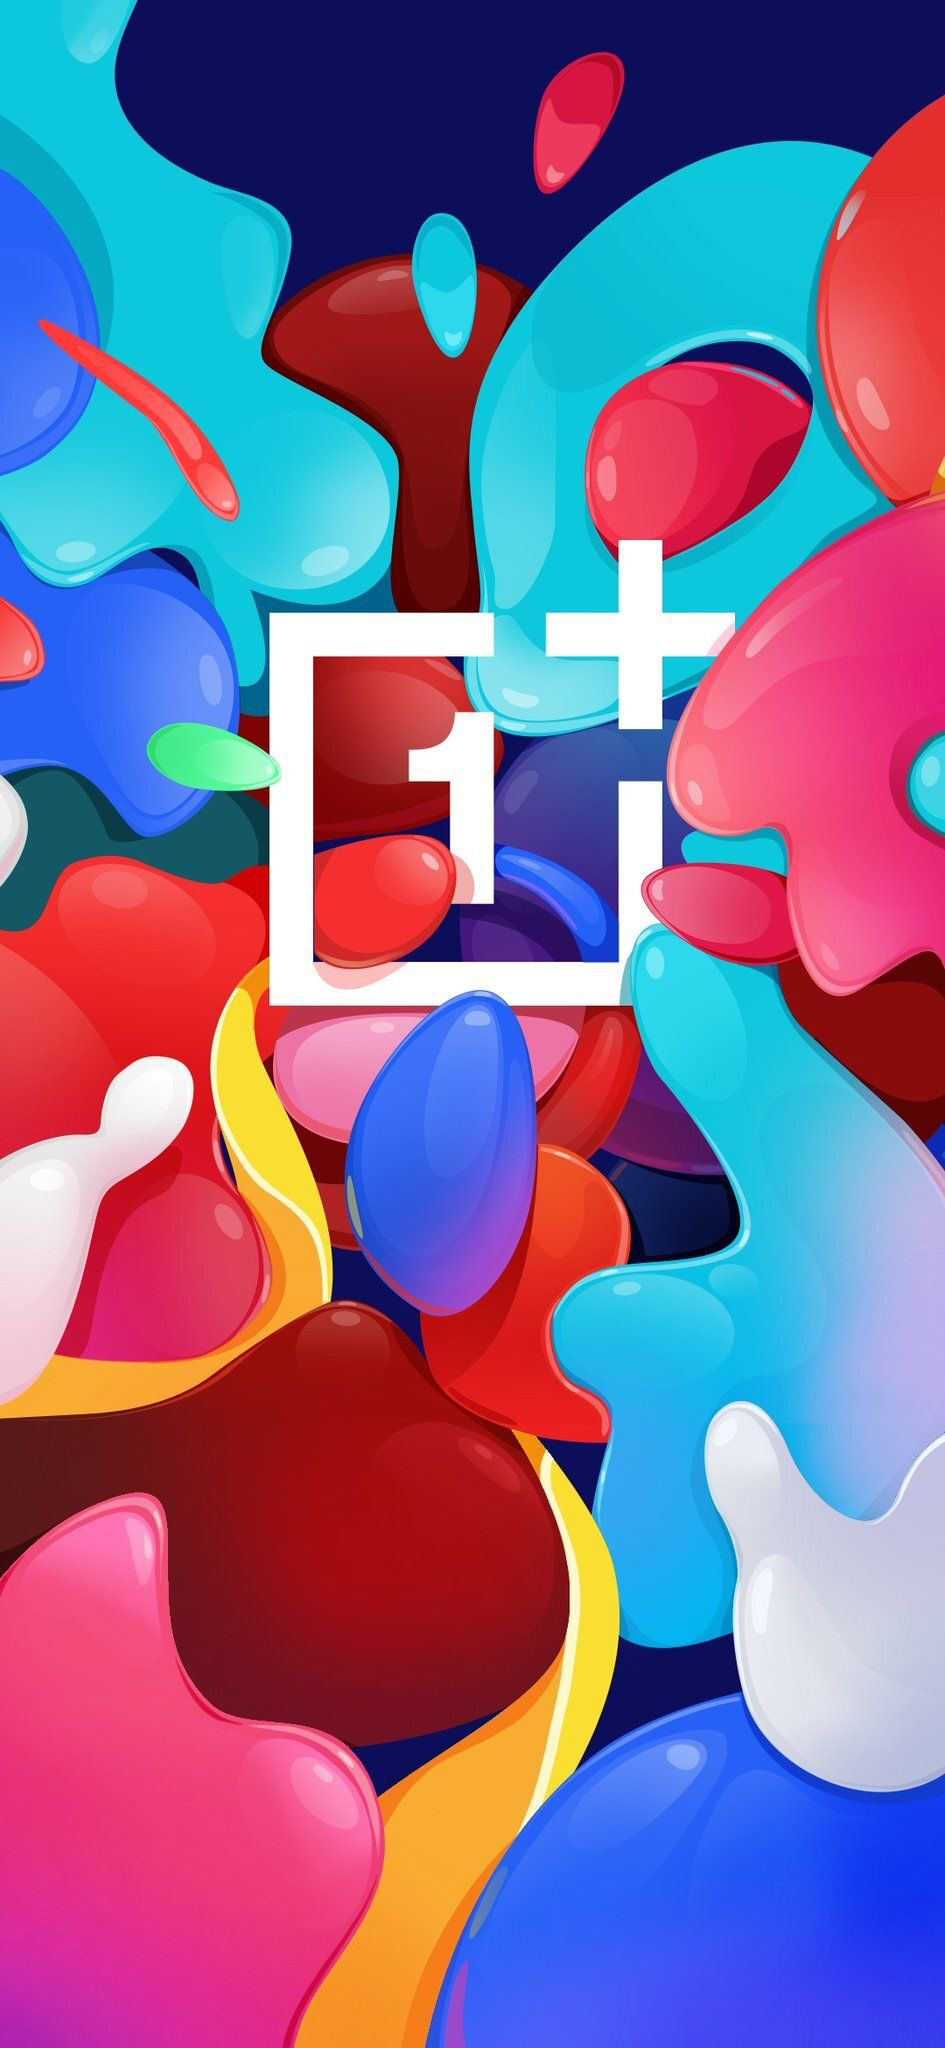 Pin By Androidbunny Com On Oneplus New Logo Wallpapers 945x2048 Oneplus Wallpapers New Wallpaper Download New Wallpaper Vivo v11 pro wallpaper hd 1080p download